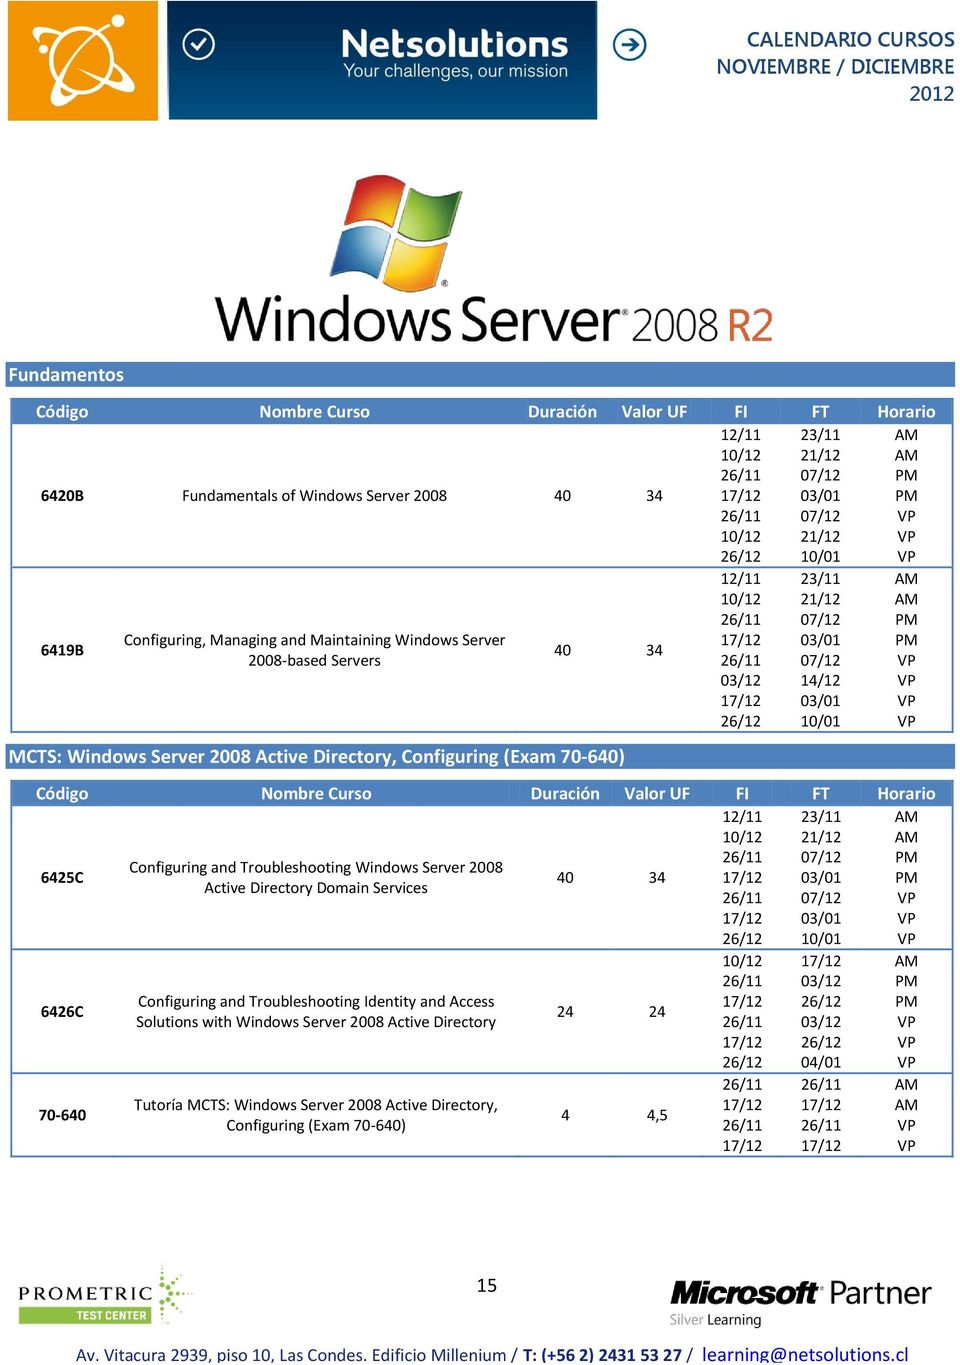 Windows Server 2008 40 34 Active Directory Domain Services 6426C 70-640 Configuring and Troubleshooting Identity and Access